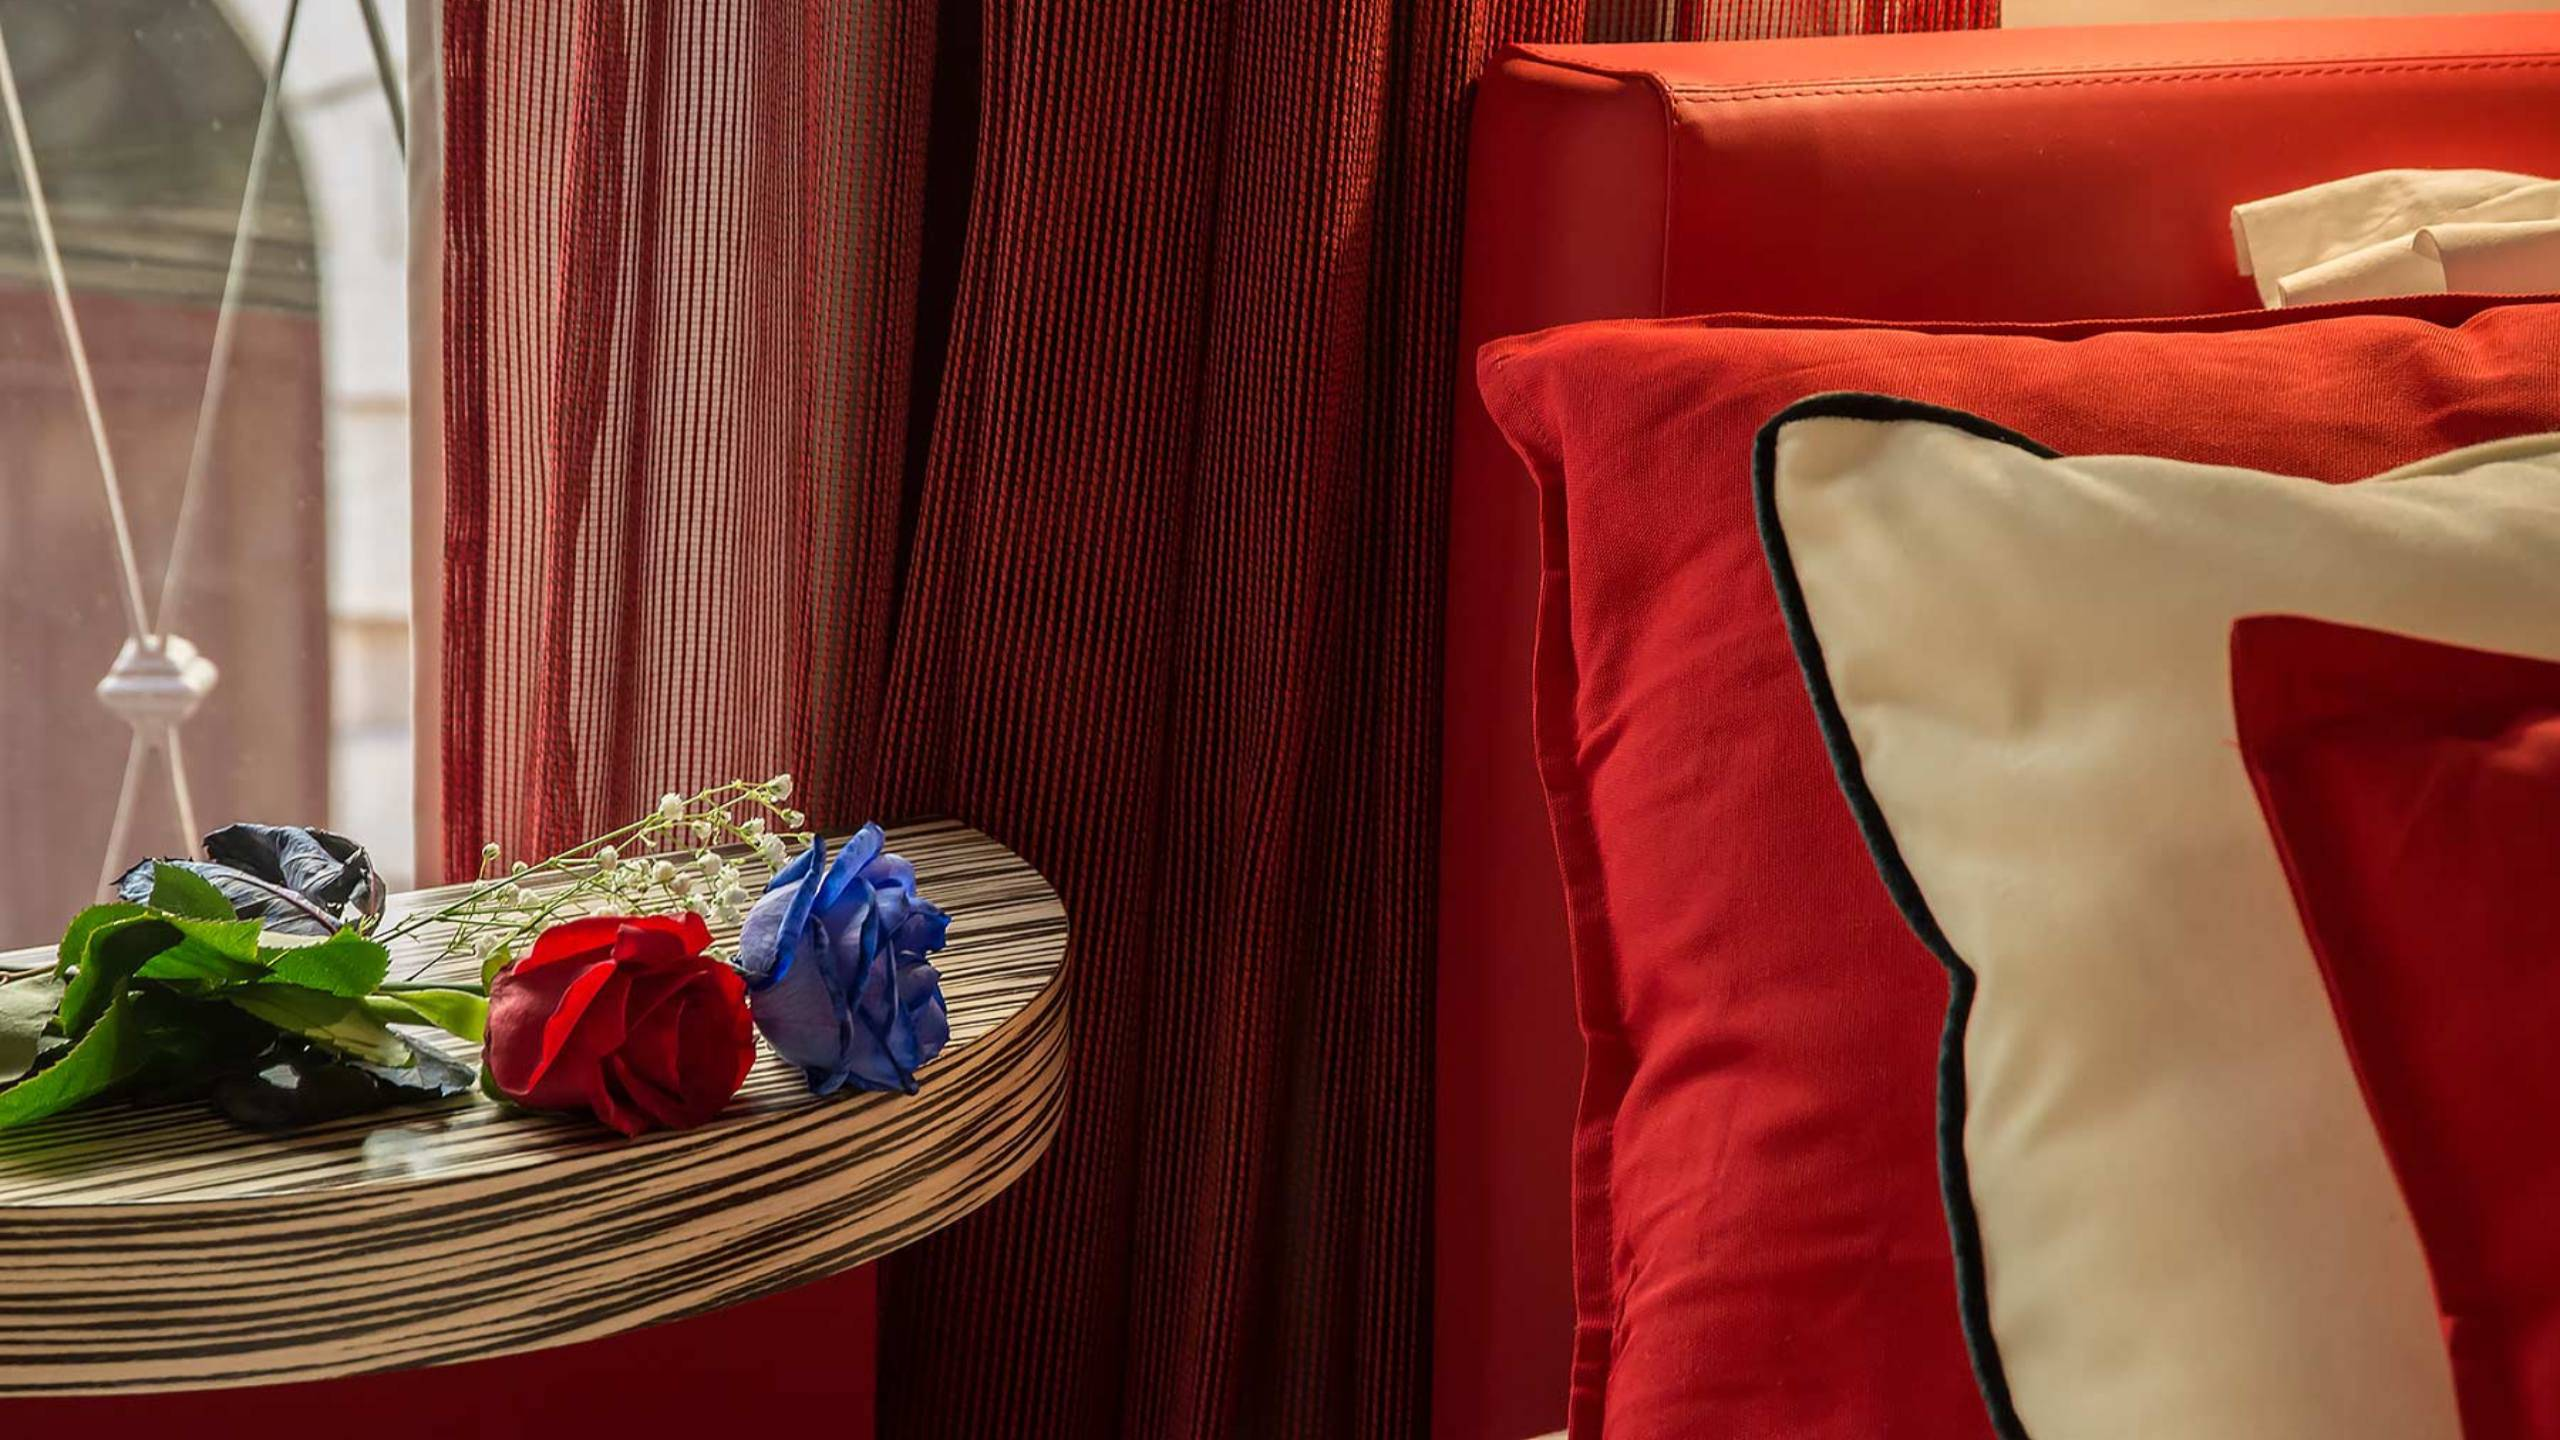 Colonna-suite-del-corso-guest-house-rome-deluxe-red-room-3631